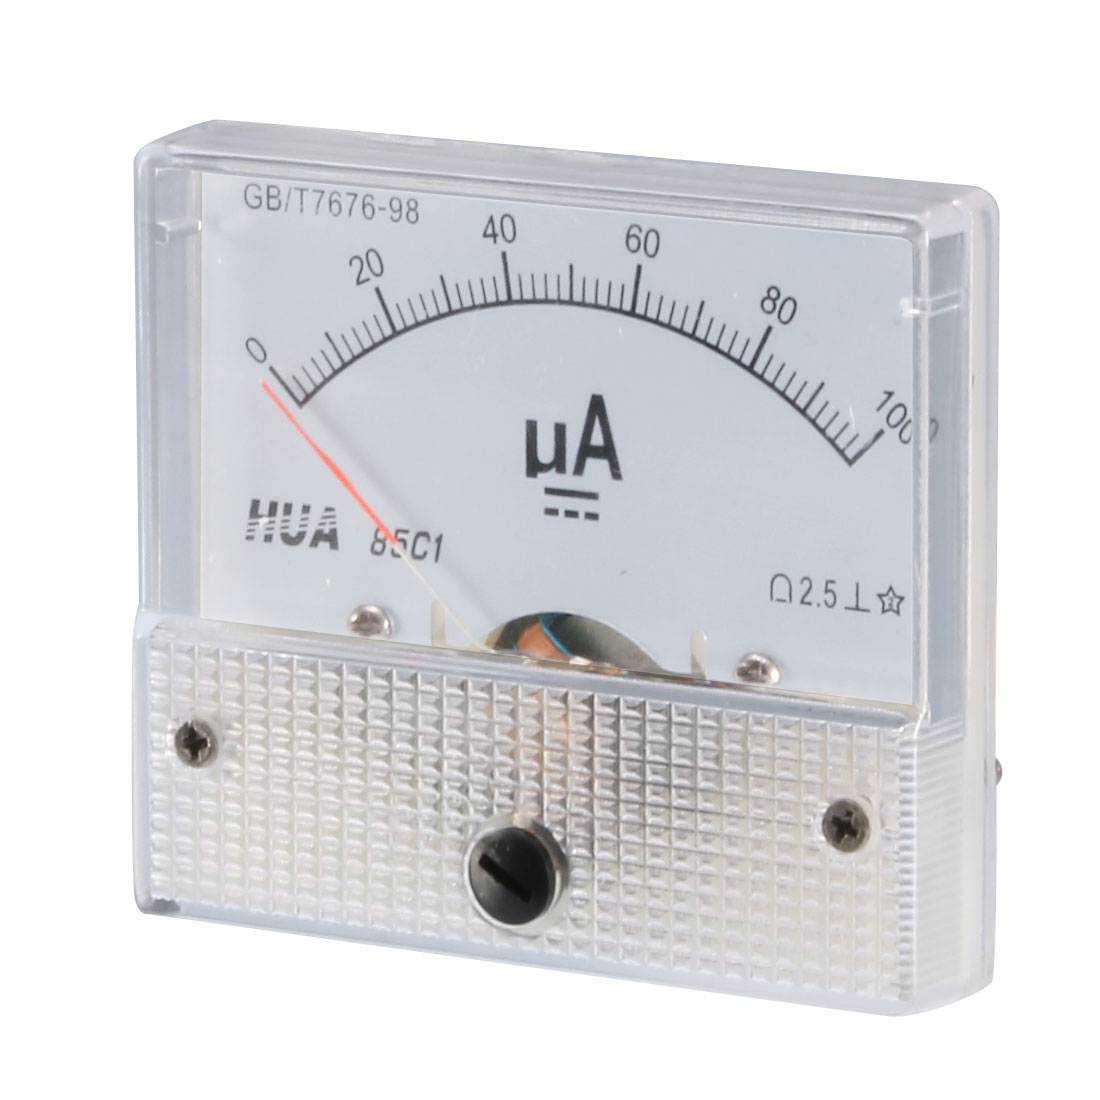 Class 2.5 Accuracy DC 0-100uA Analogue Display Ammeter 85C1-uA